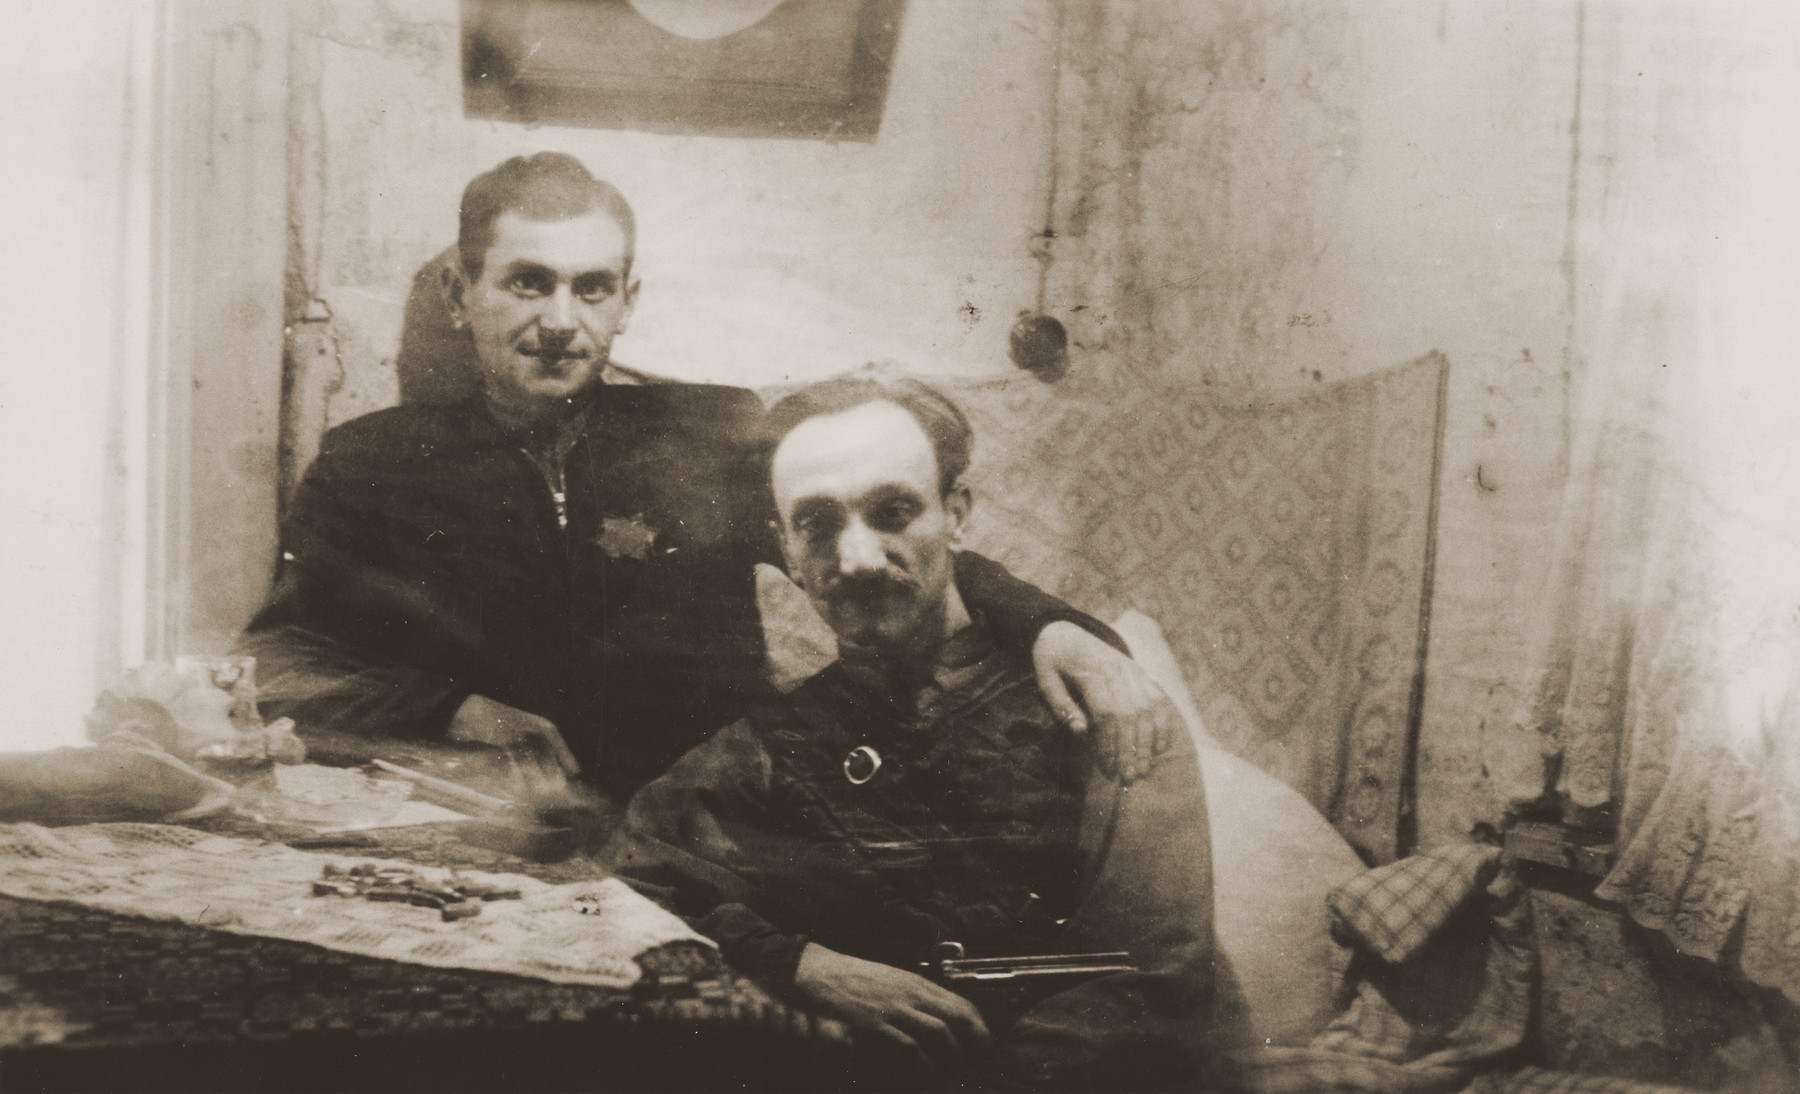 Two members of the Jewish General Fighting Organization in the Kovno ghetto.  Pictured are Chaim Yellin, leader of the ghetto underground and his assistant Moshe Musel.  Musel was one of Yellin's inner circle.  He worked in a garage and was responsible for arranging transportation for departing partisans.